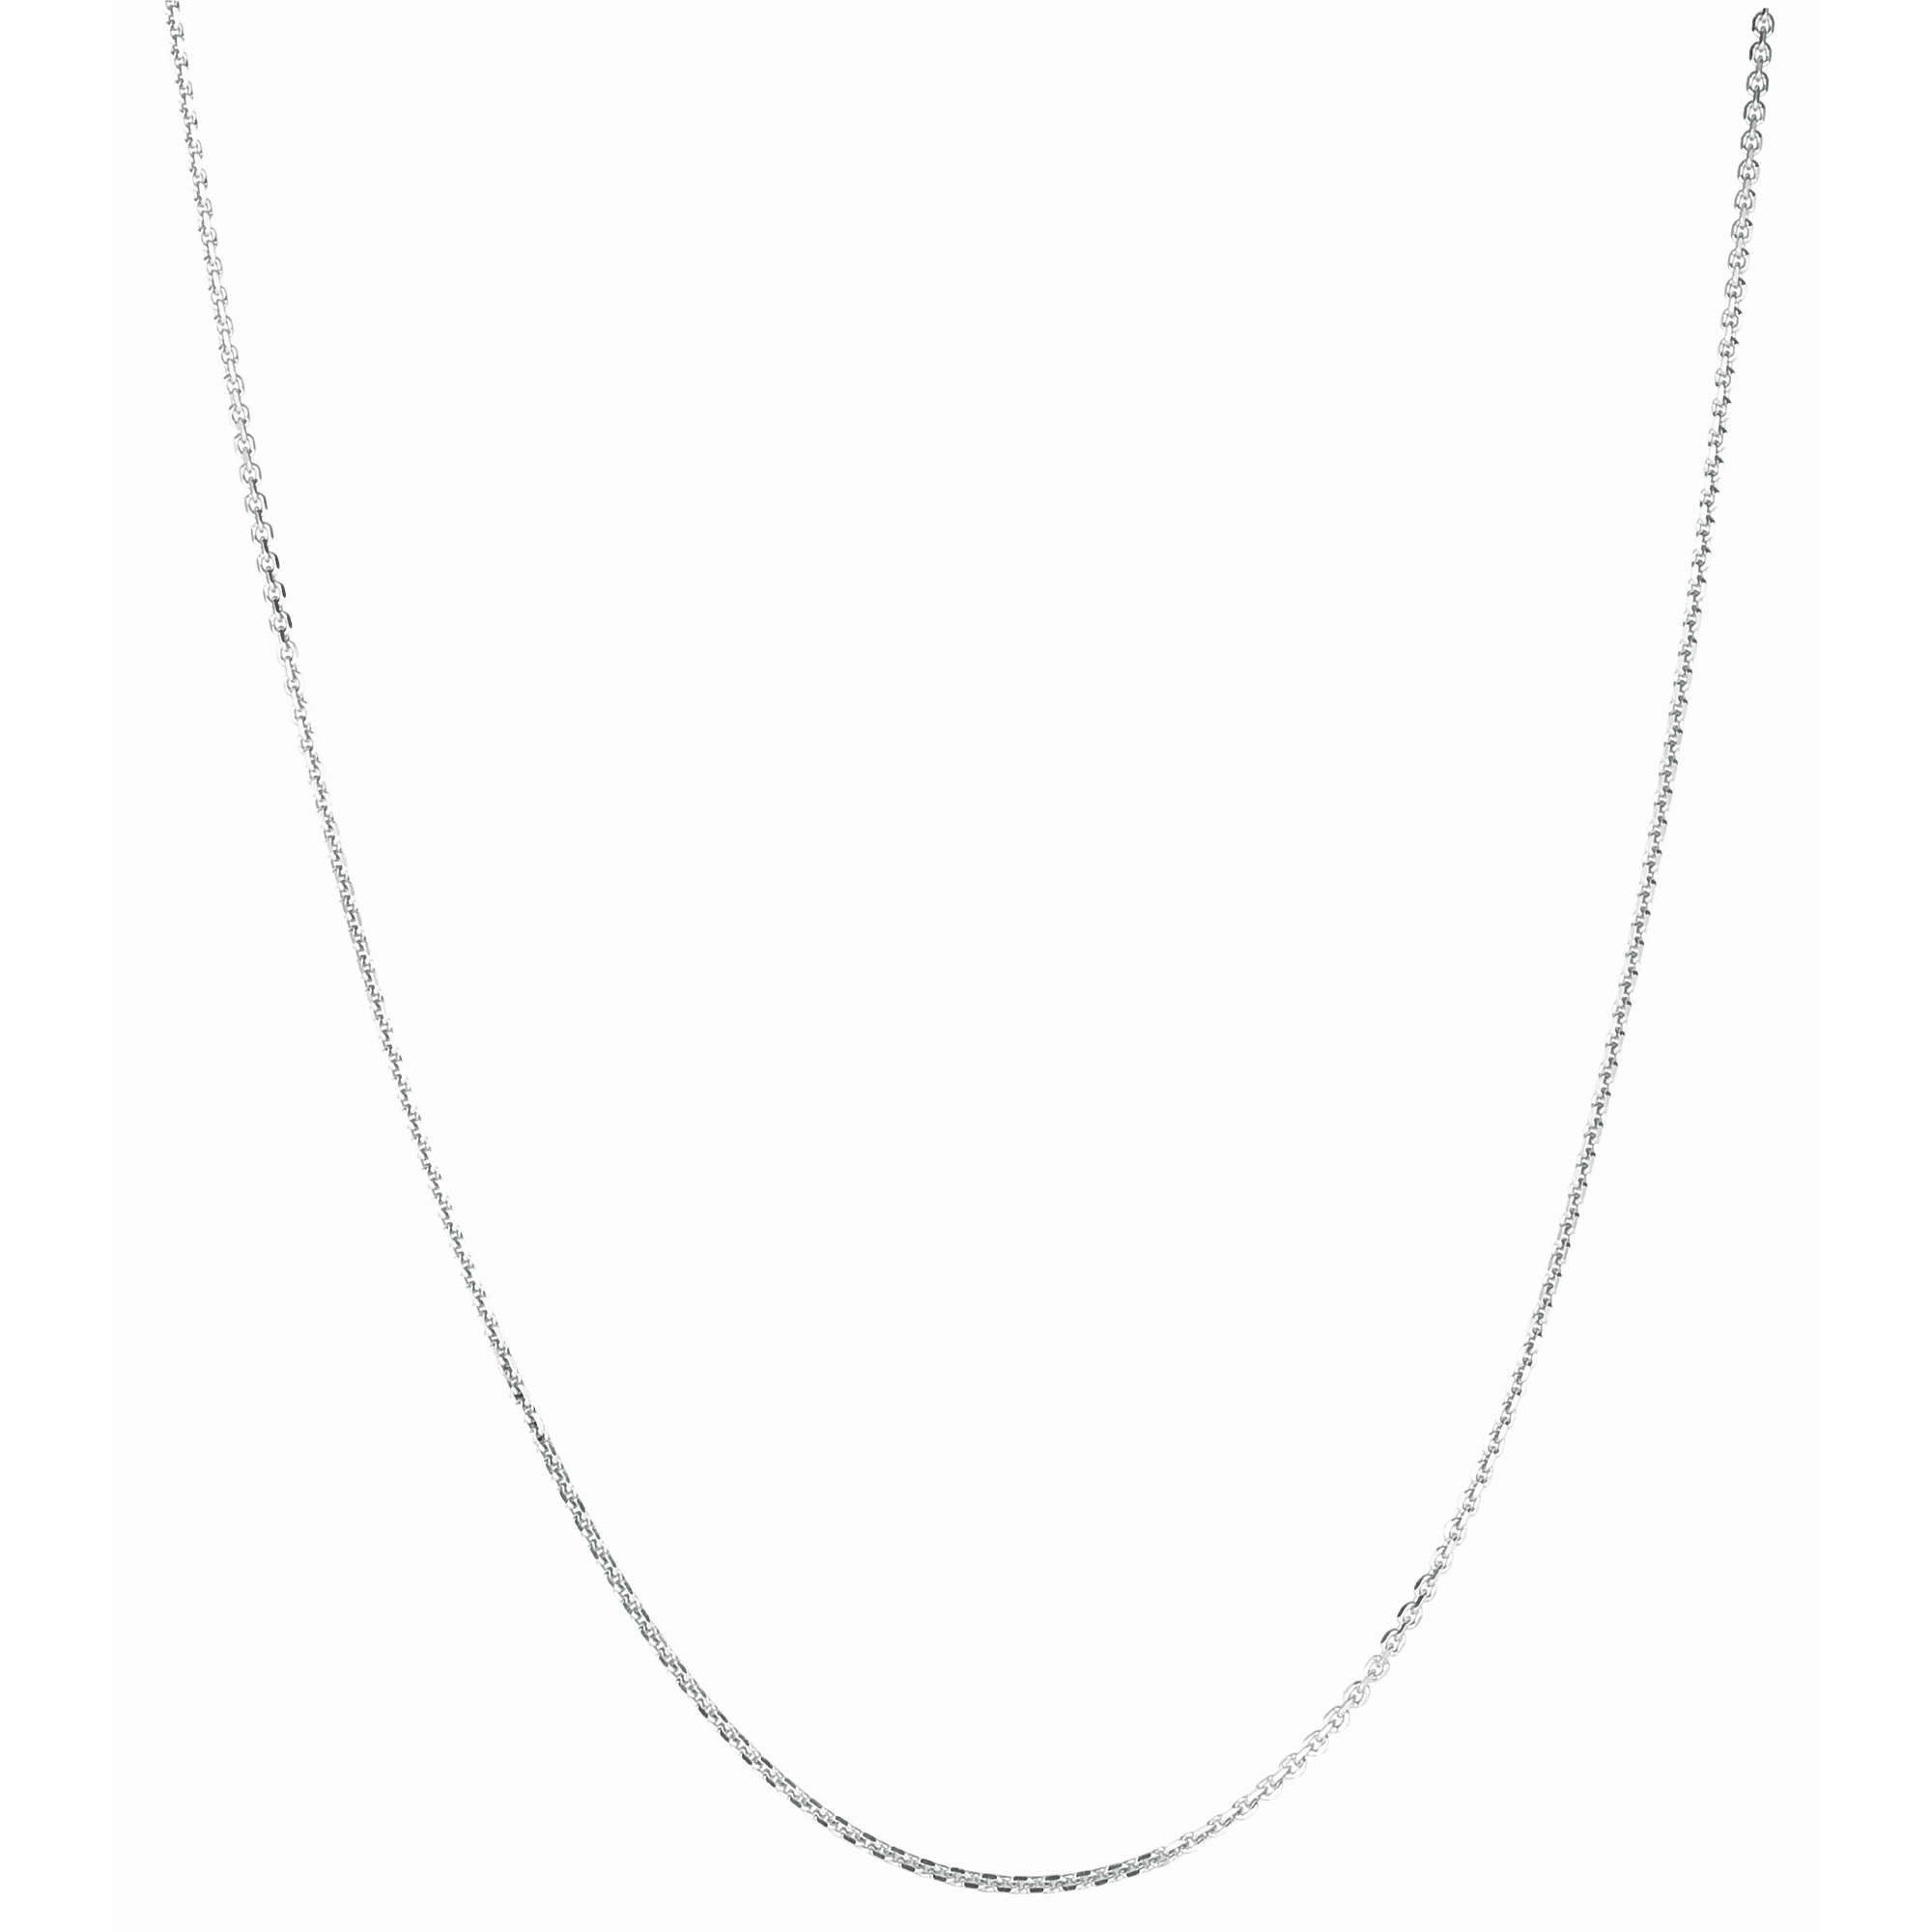 Silver 24 inches with Rhodium Finish 1.4mm Diamond Cut Cable Chain with Lobster Clasp